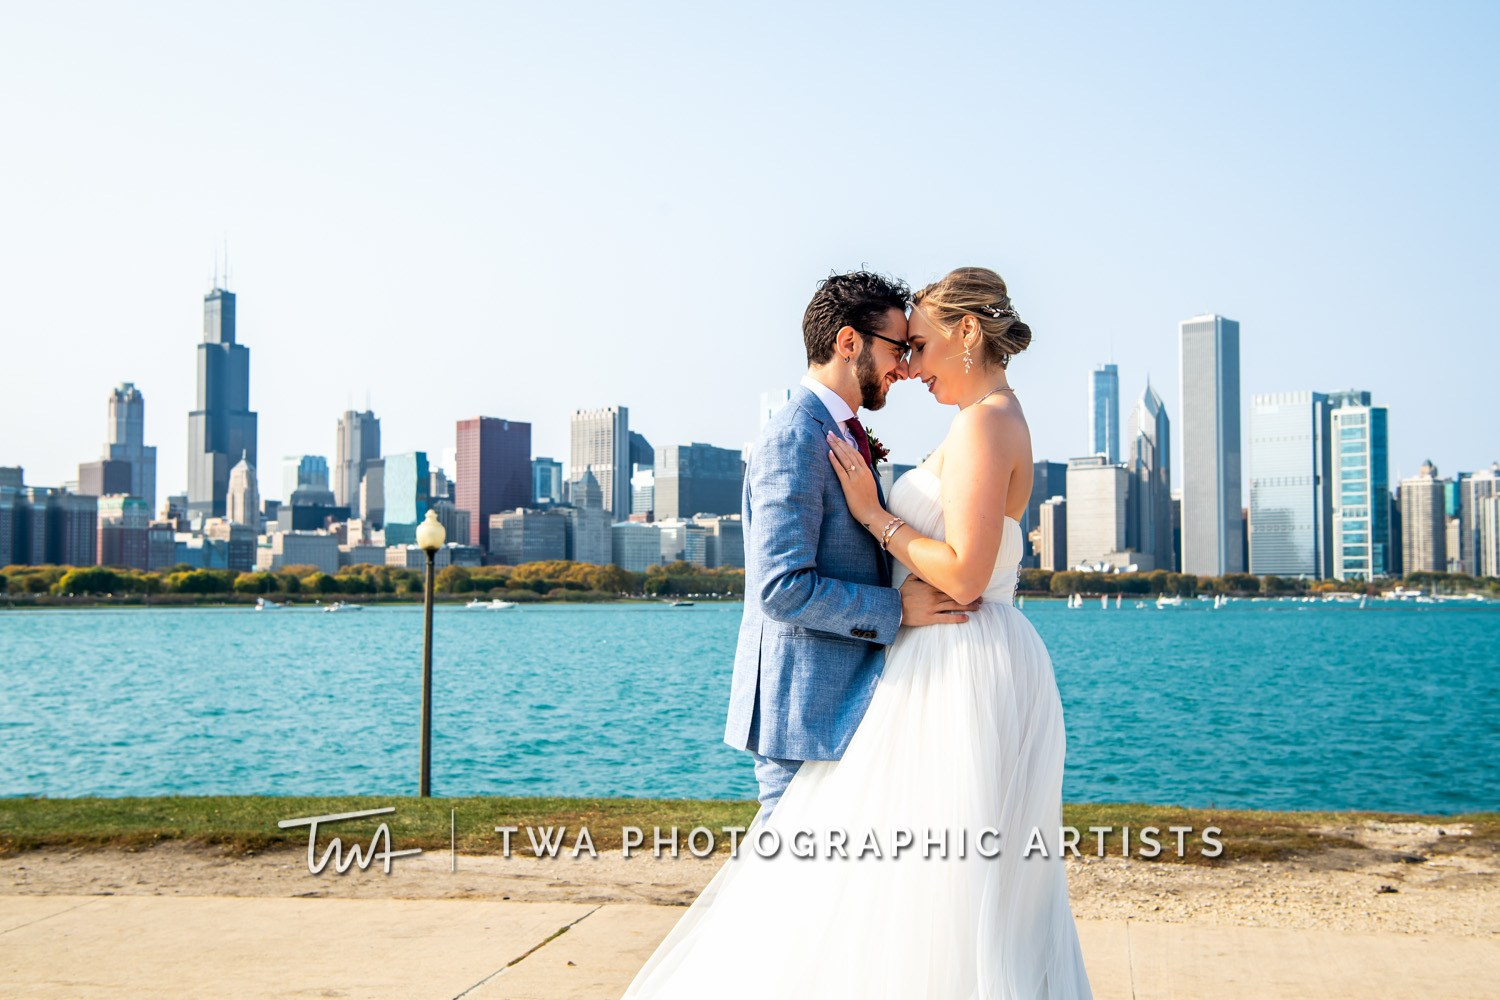 Chicago-Wedding-Photographer-TWA-Photographic-Artists-City-Hall-Event_Masterova_Alkhateeb_AA-0185-Edit